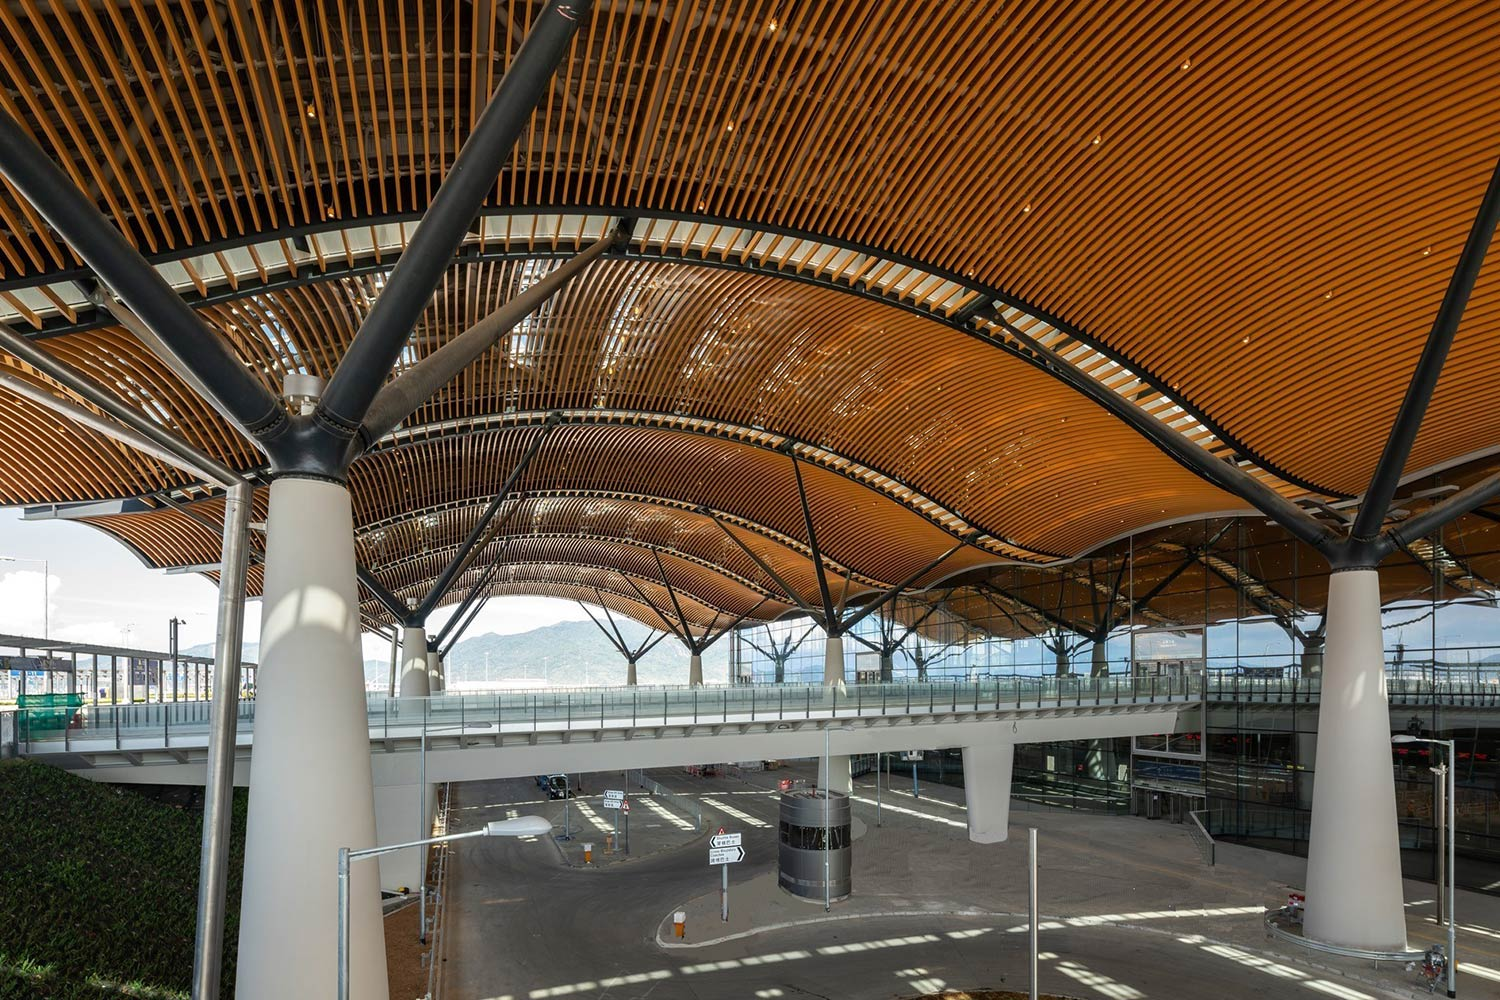 Tree-like structural columns hold up curved roof of the Hong Kong Port Passenger Clearance Building